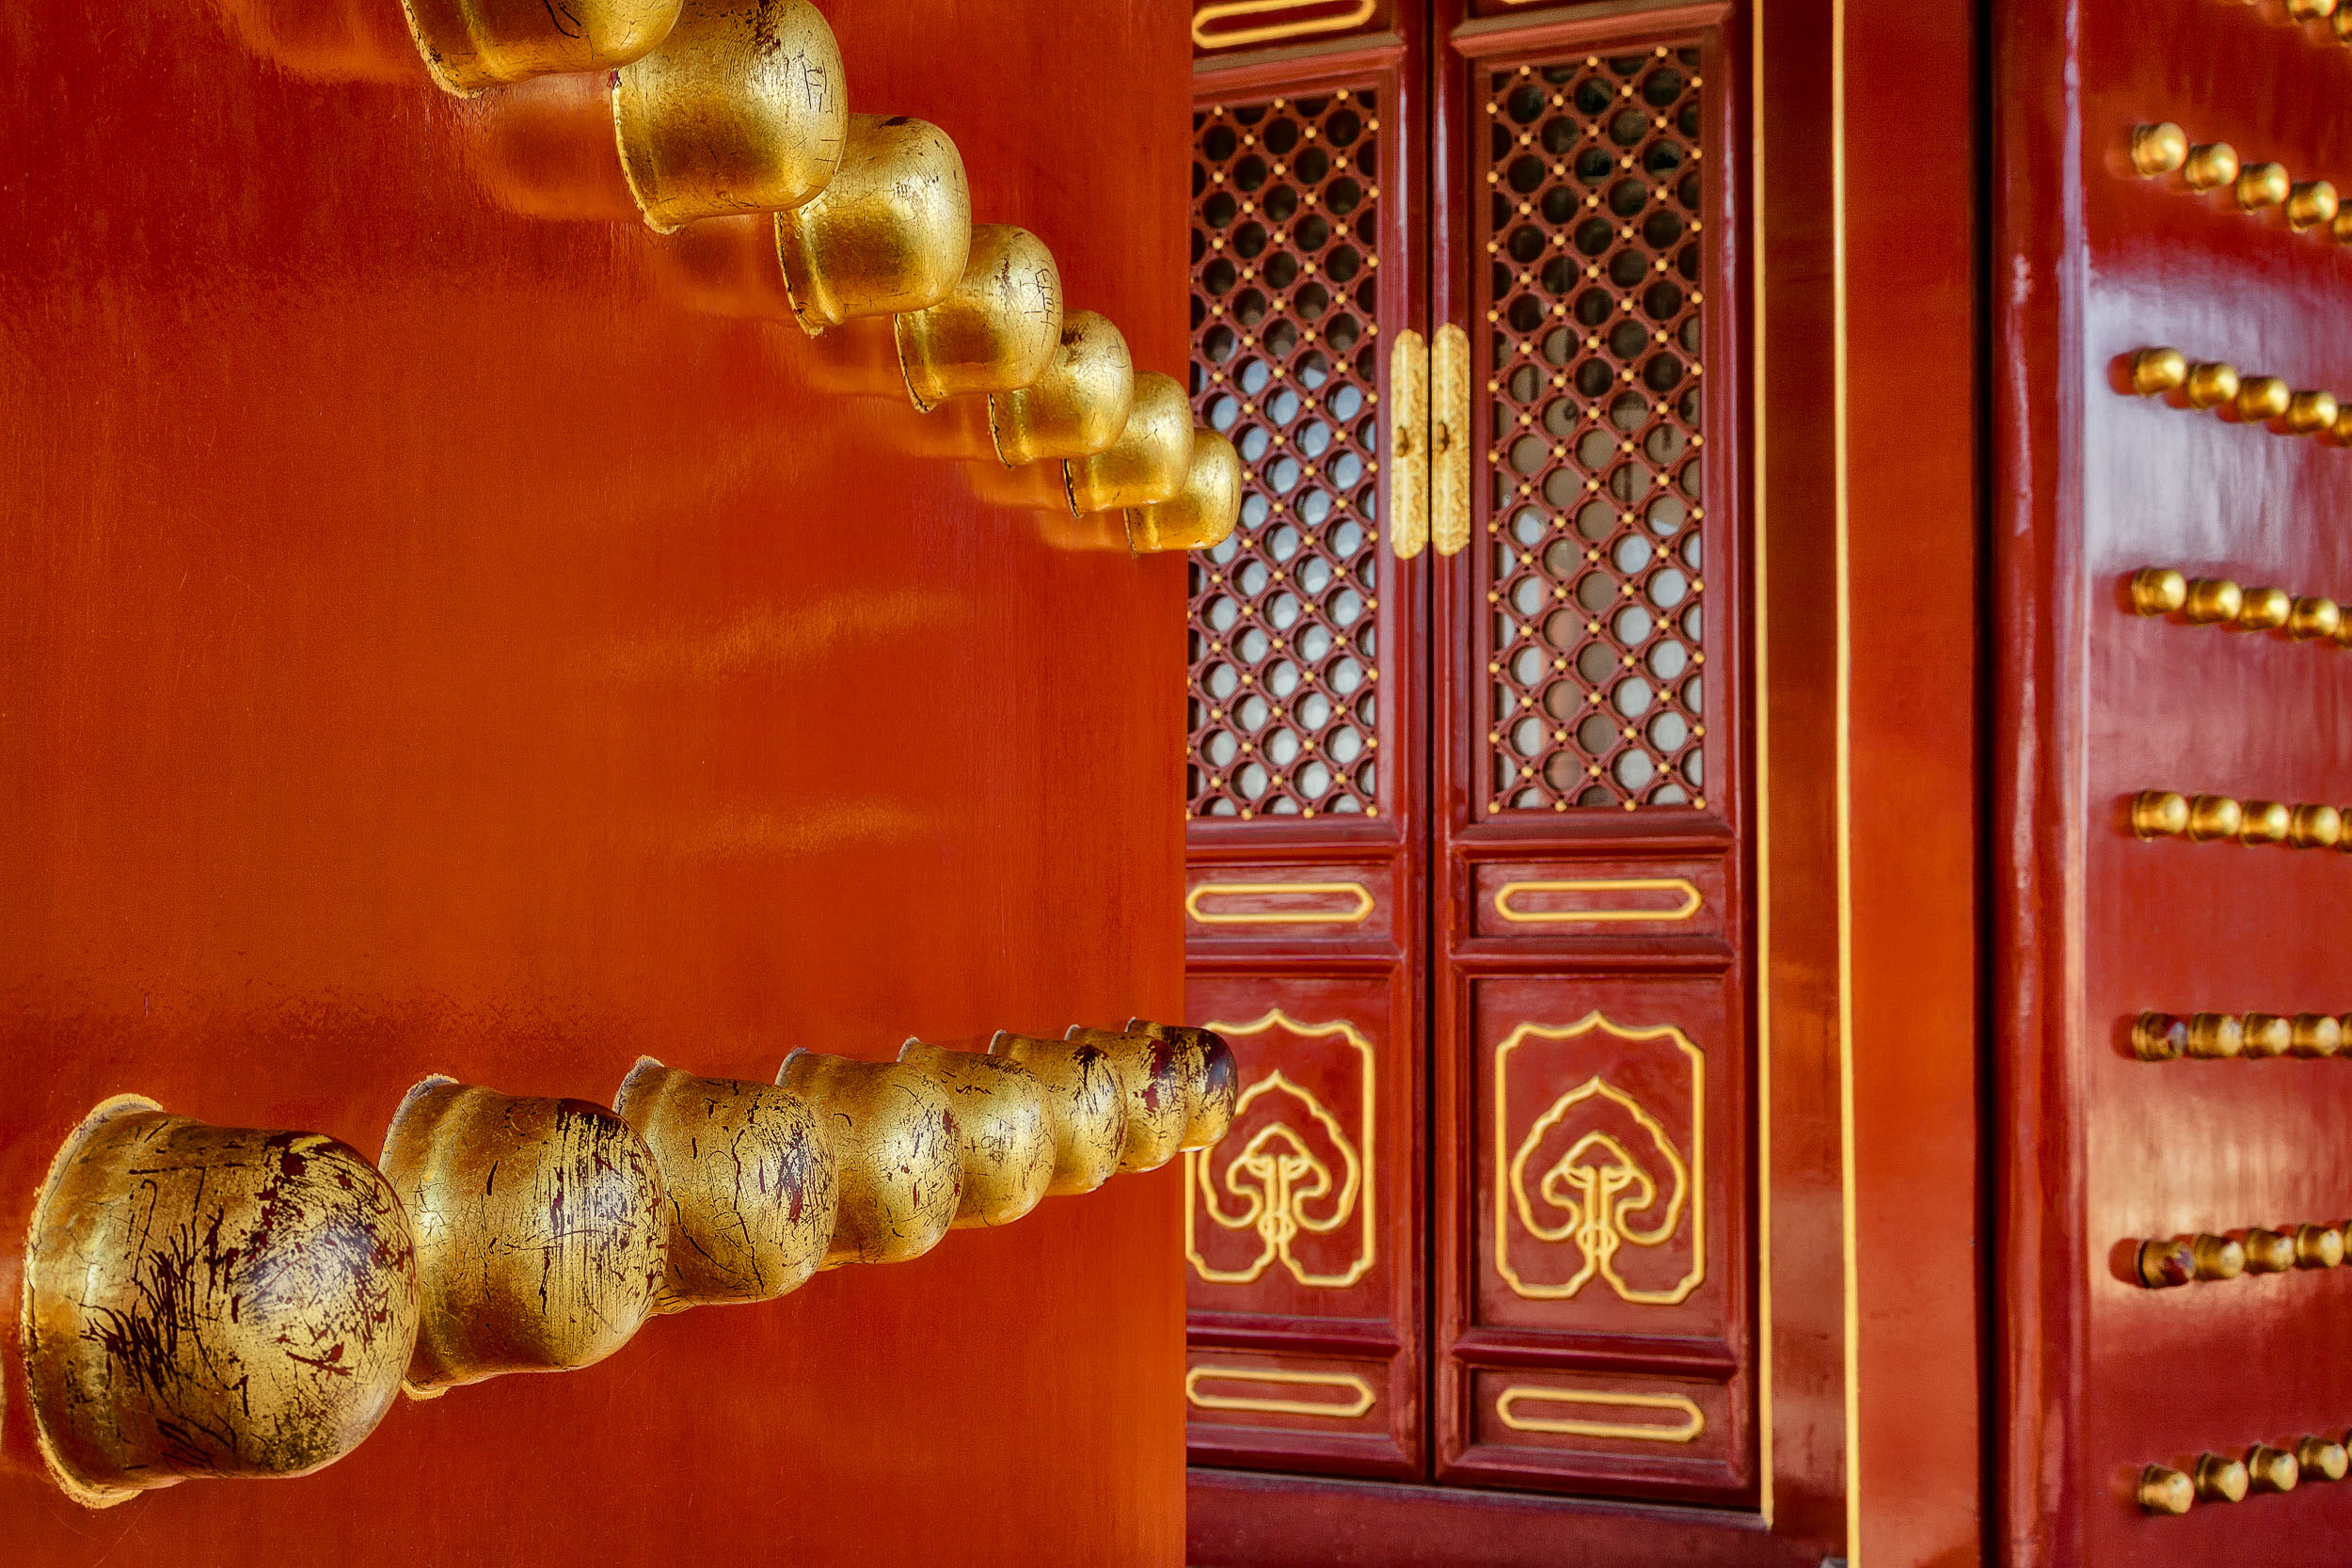 Large    brass knobs    lead the eye to a    fabulously decorated door    at the    Temple Of Heaven    in    Beijing, China   .